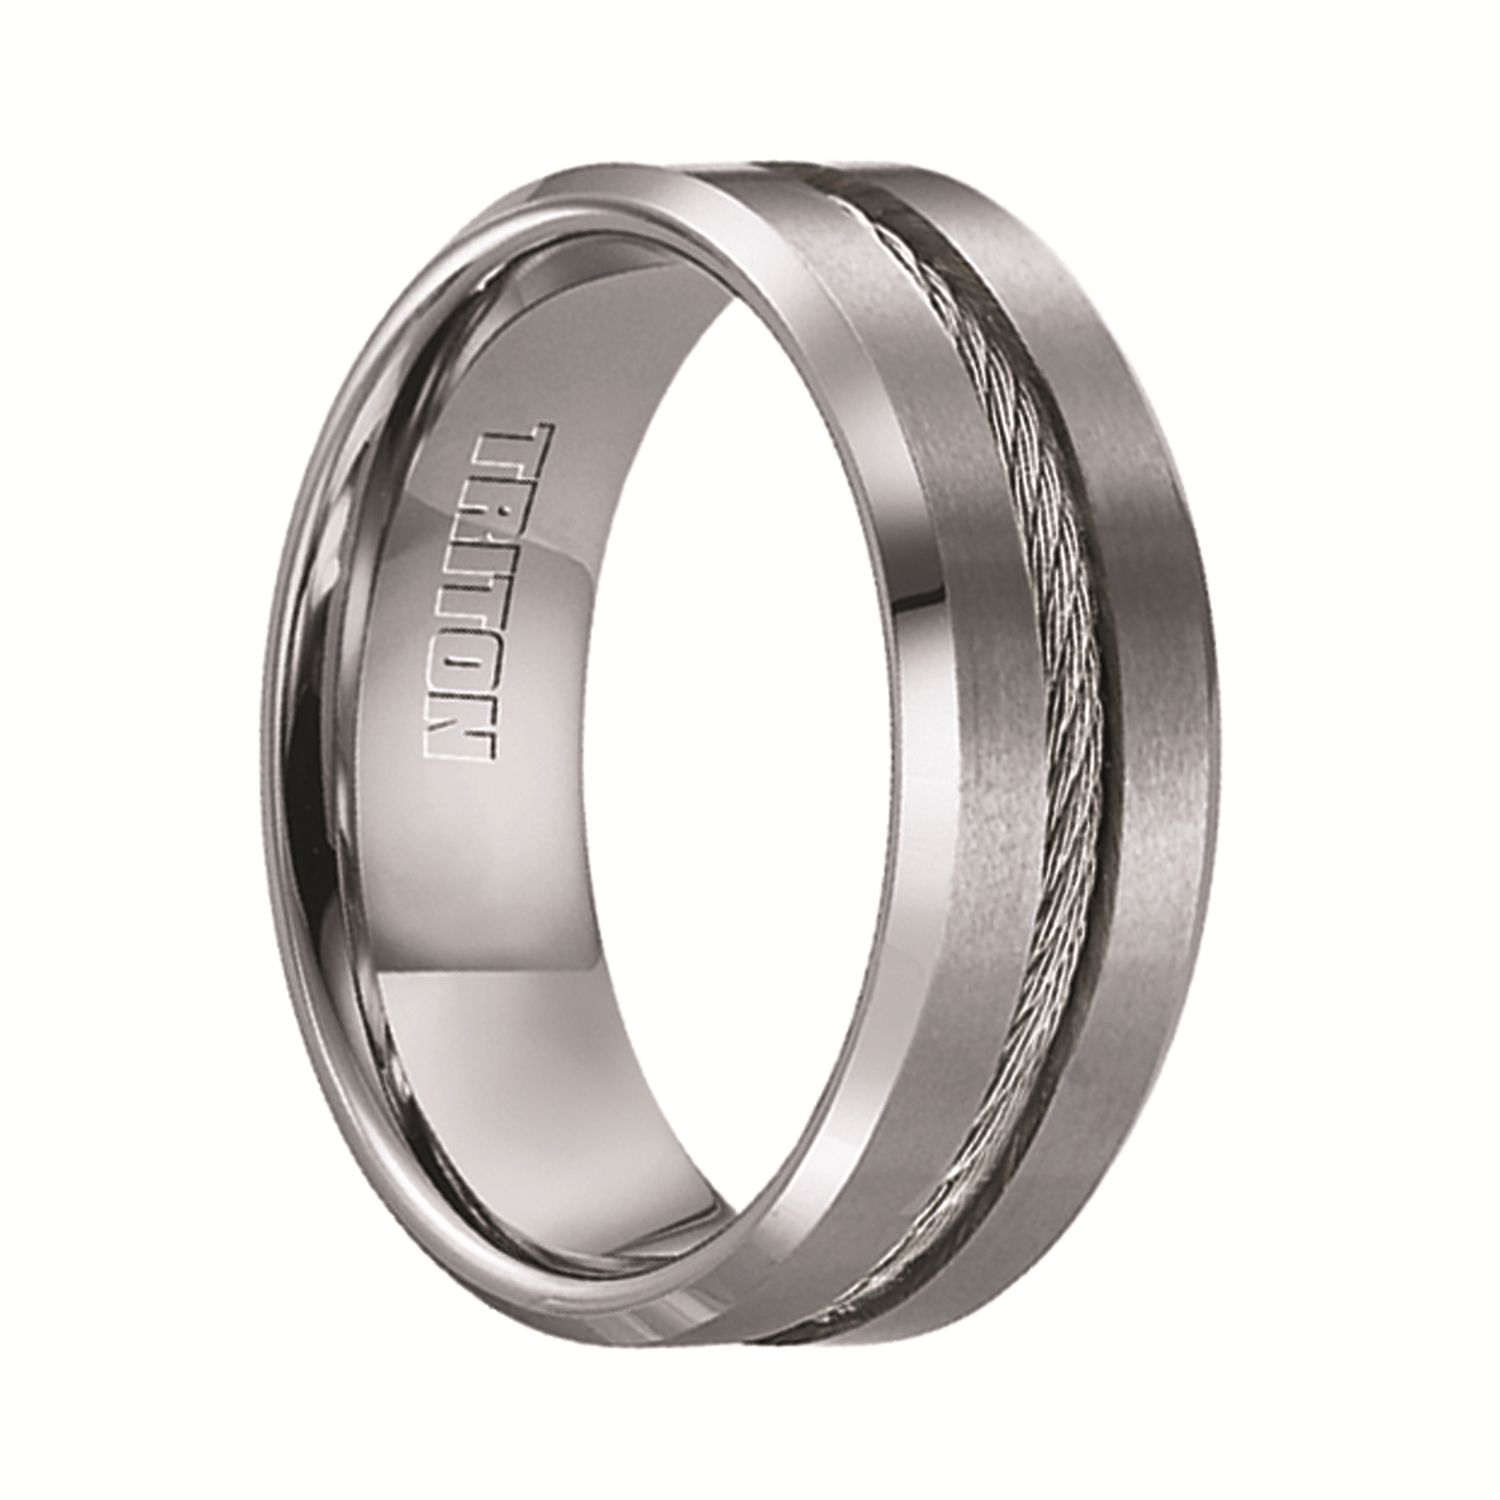 CURTIS Tungsten Wedding Band with Steel Cable Inlay by Triton Rings